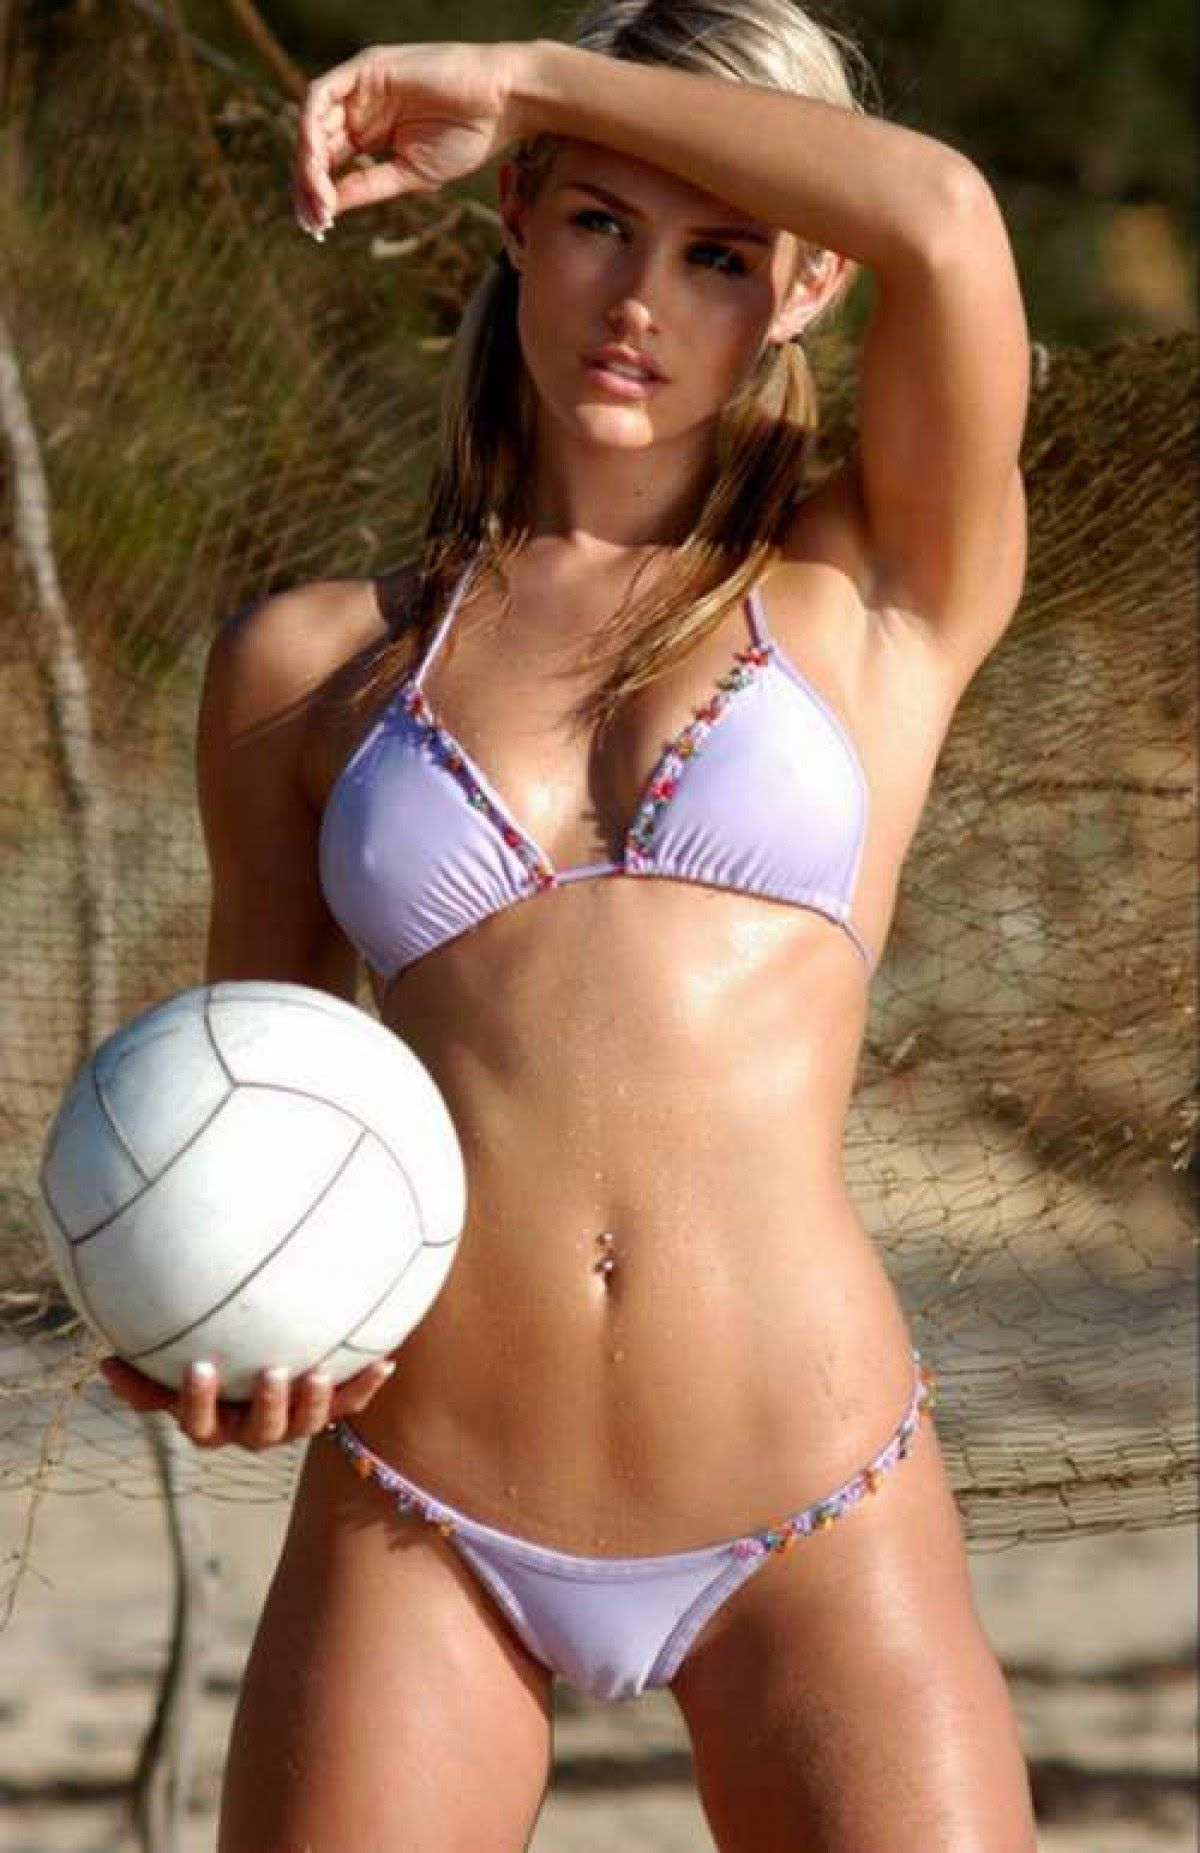 Slutty Volleyball Cool camel toe | hot chicks | pinterest | camels